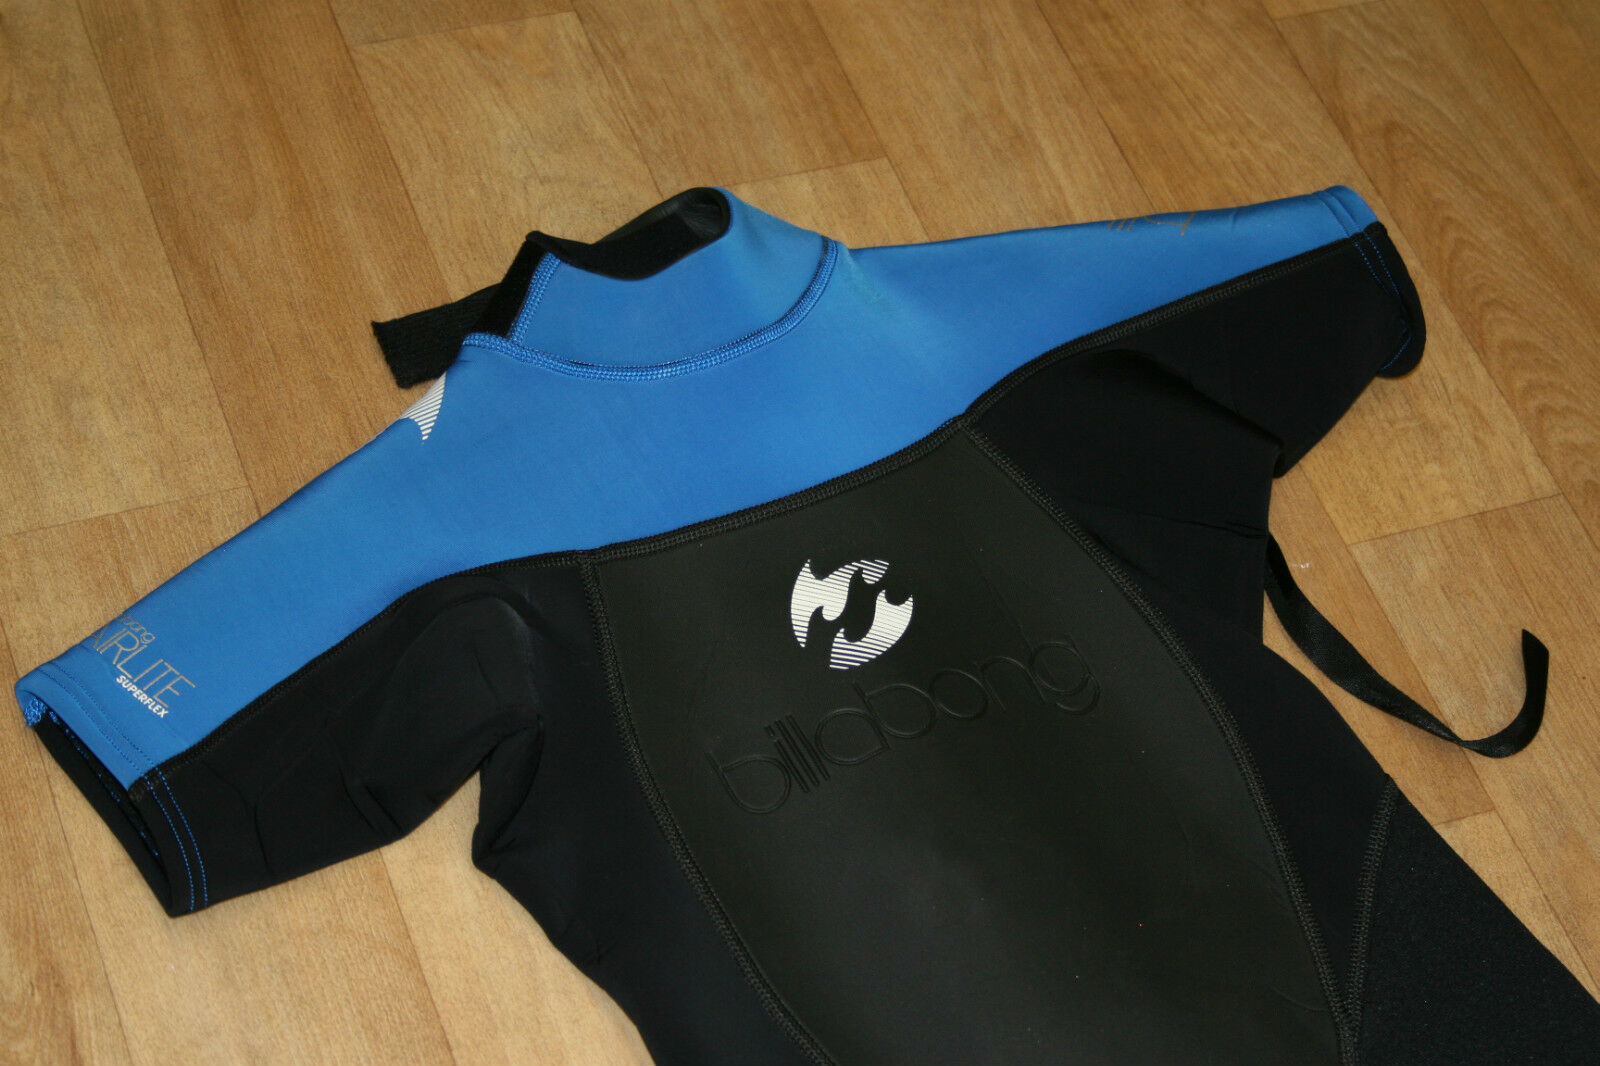 BILLABONG SYNERGY LADIES GIRL SHORTY SHORTIE WETSUIT 2MM SURF SWIM blueE NEW